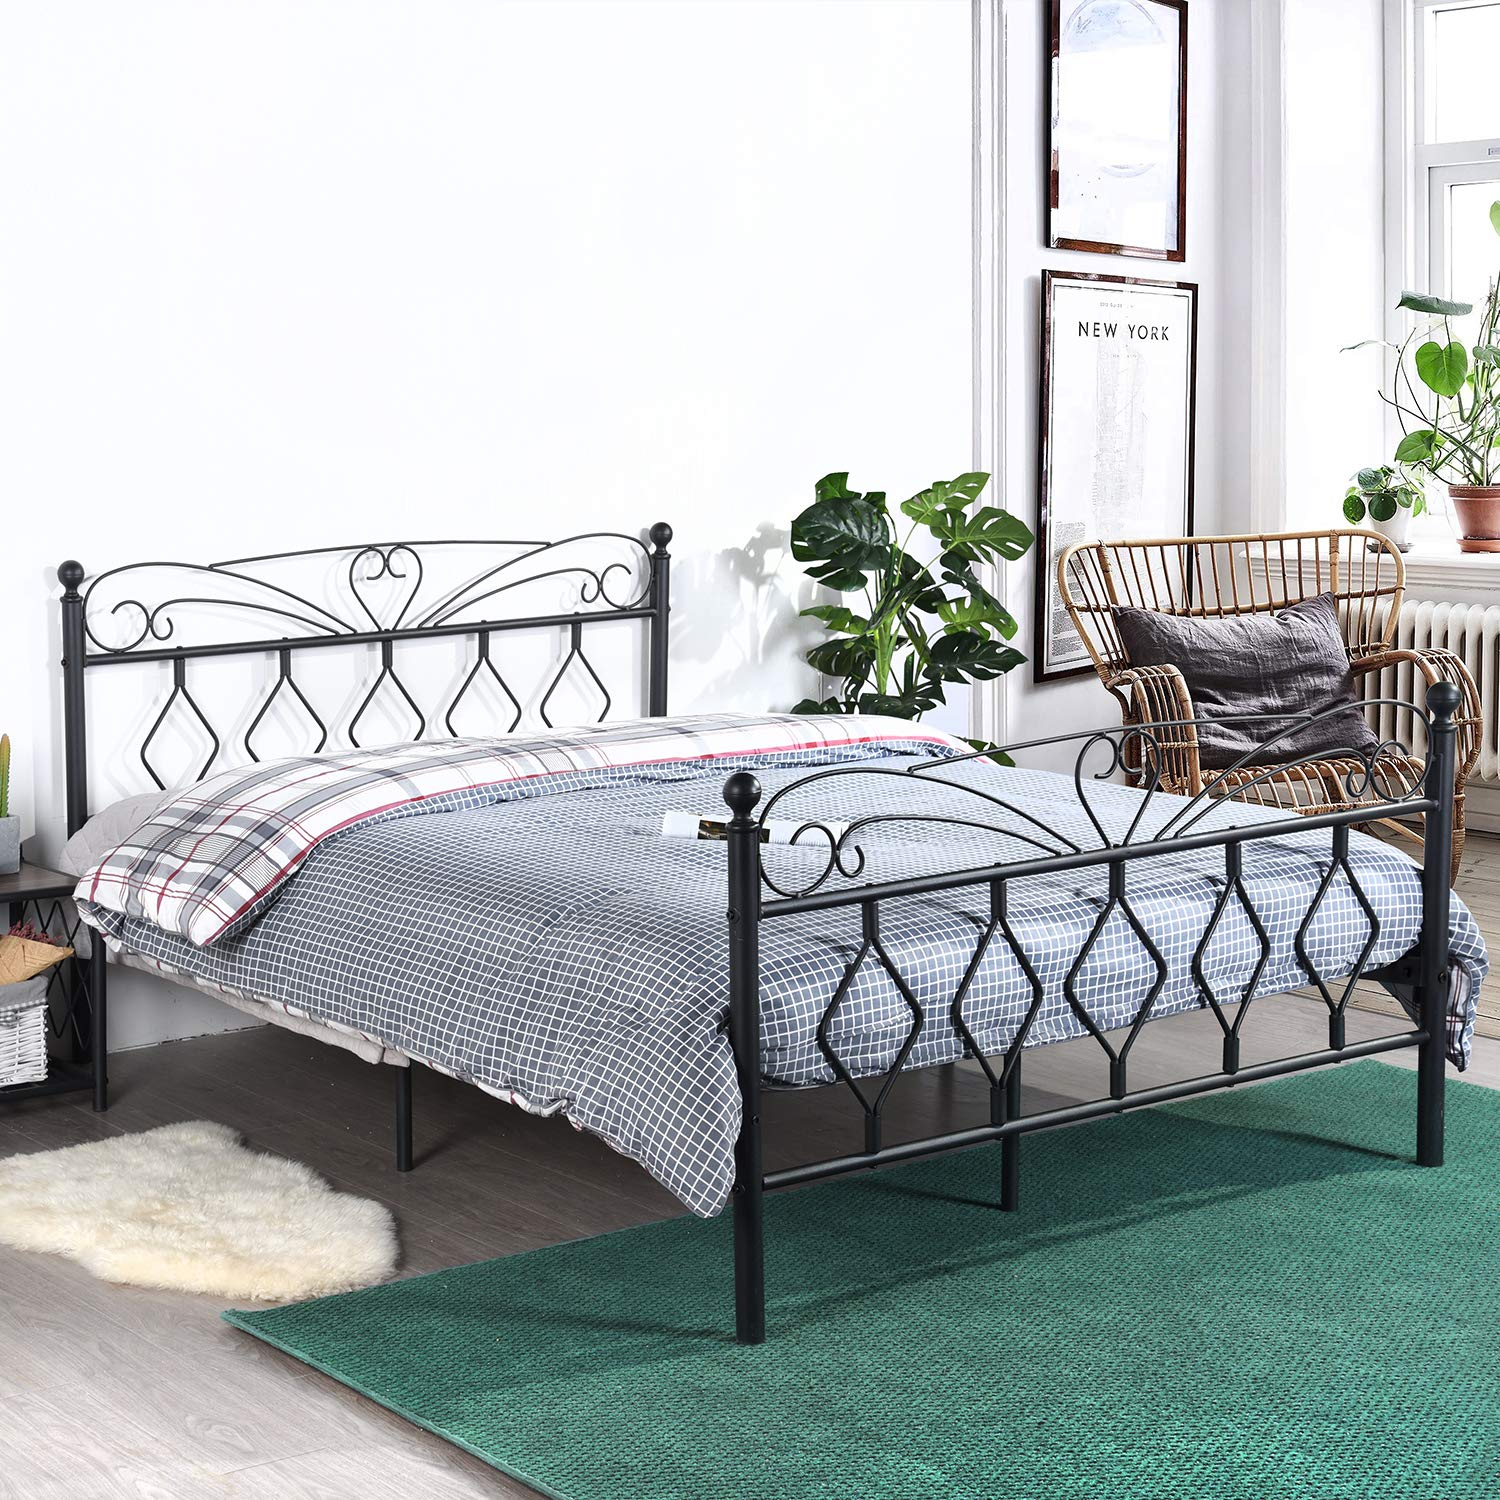 EGGREE Queen Size Platform Bed Frame Metal Bed Frame with Victorian Style Headboard and Footboard, Mattress Foundation/Box Spring Replacement/Smart Bed Base,Mattee Black